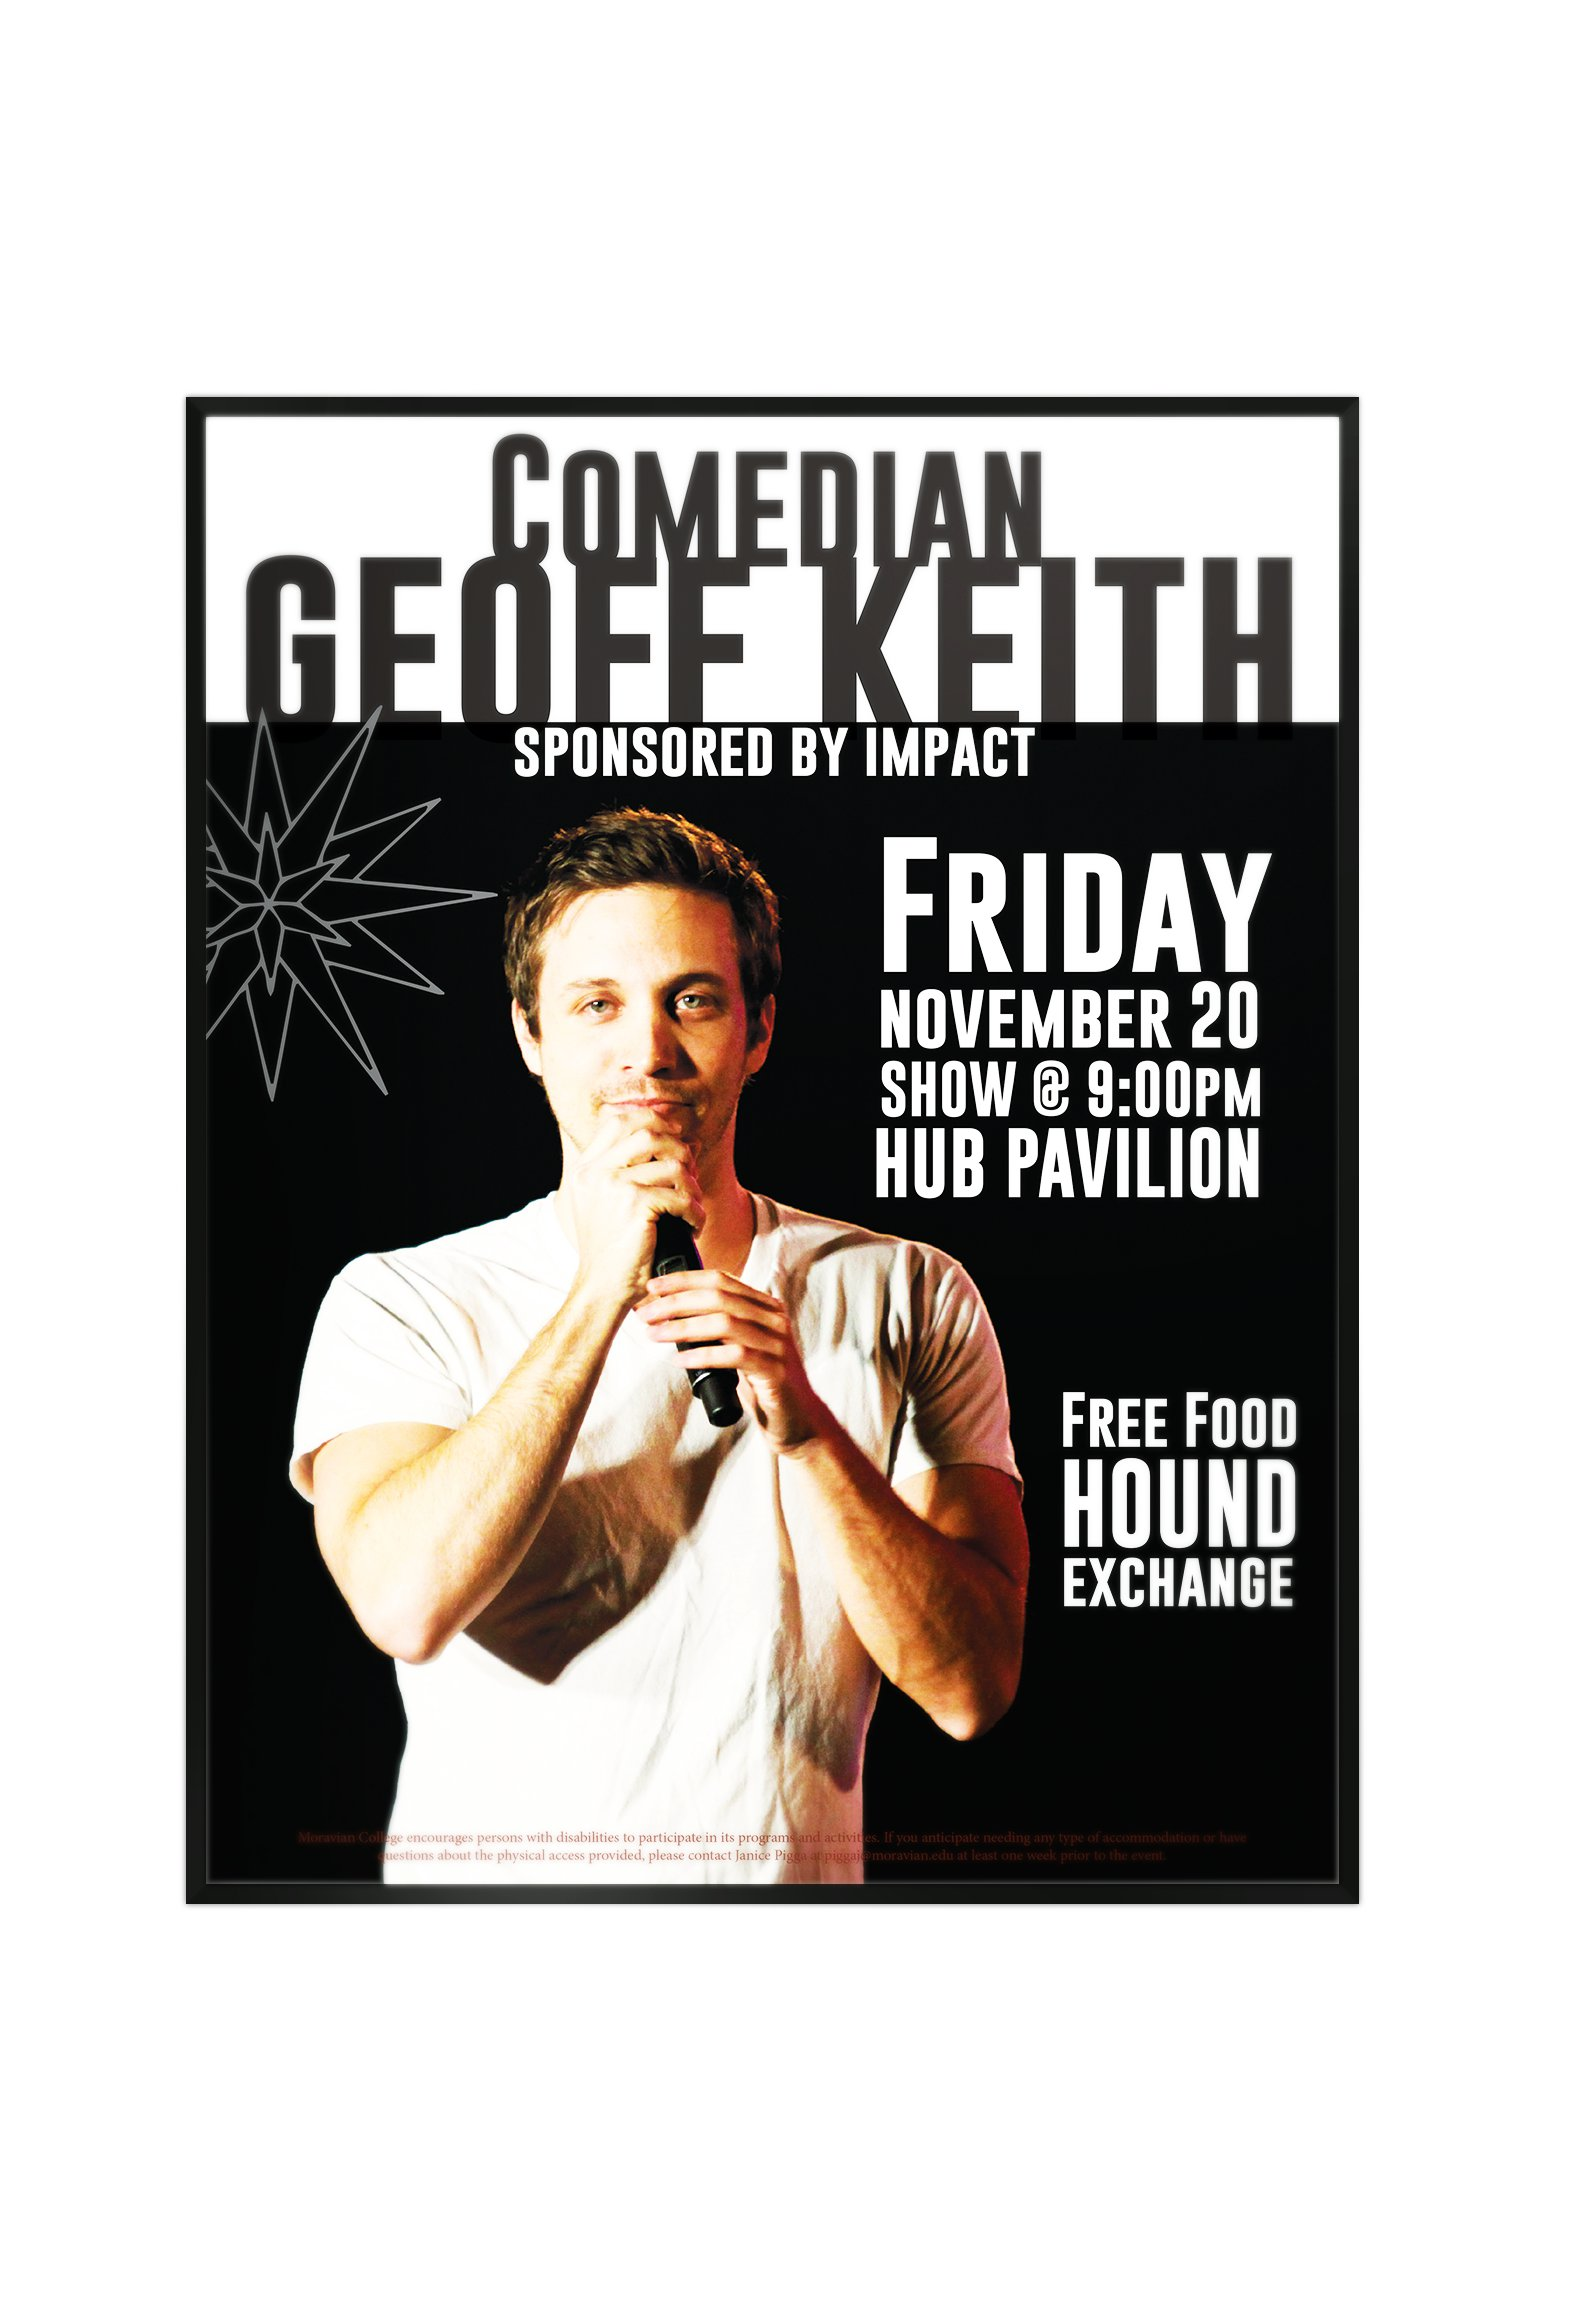 Comedian Geoff Keith Promotion